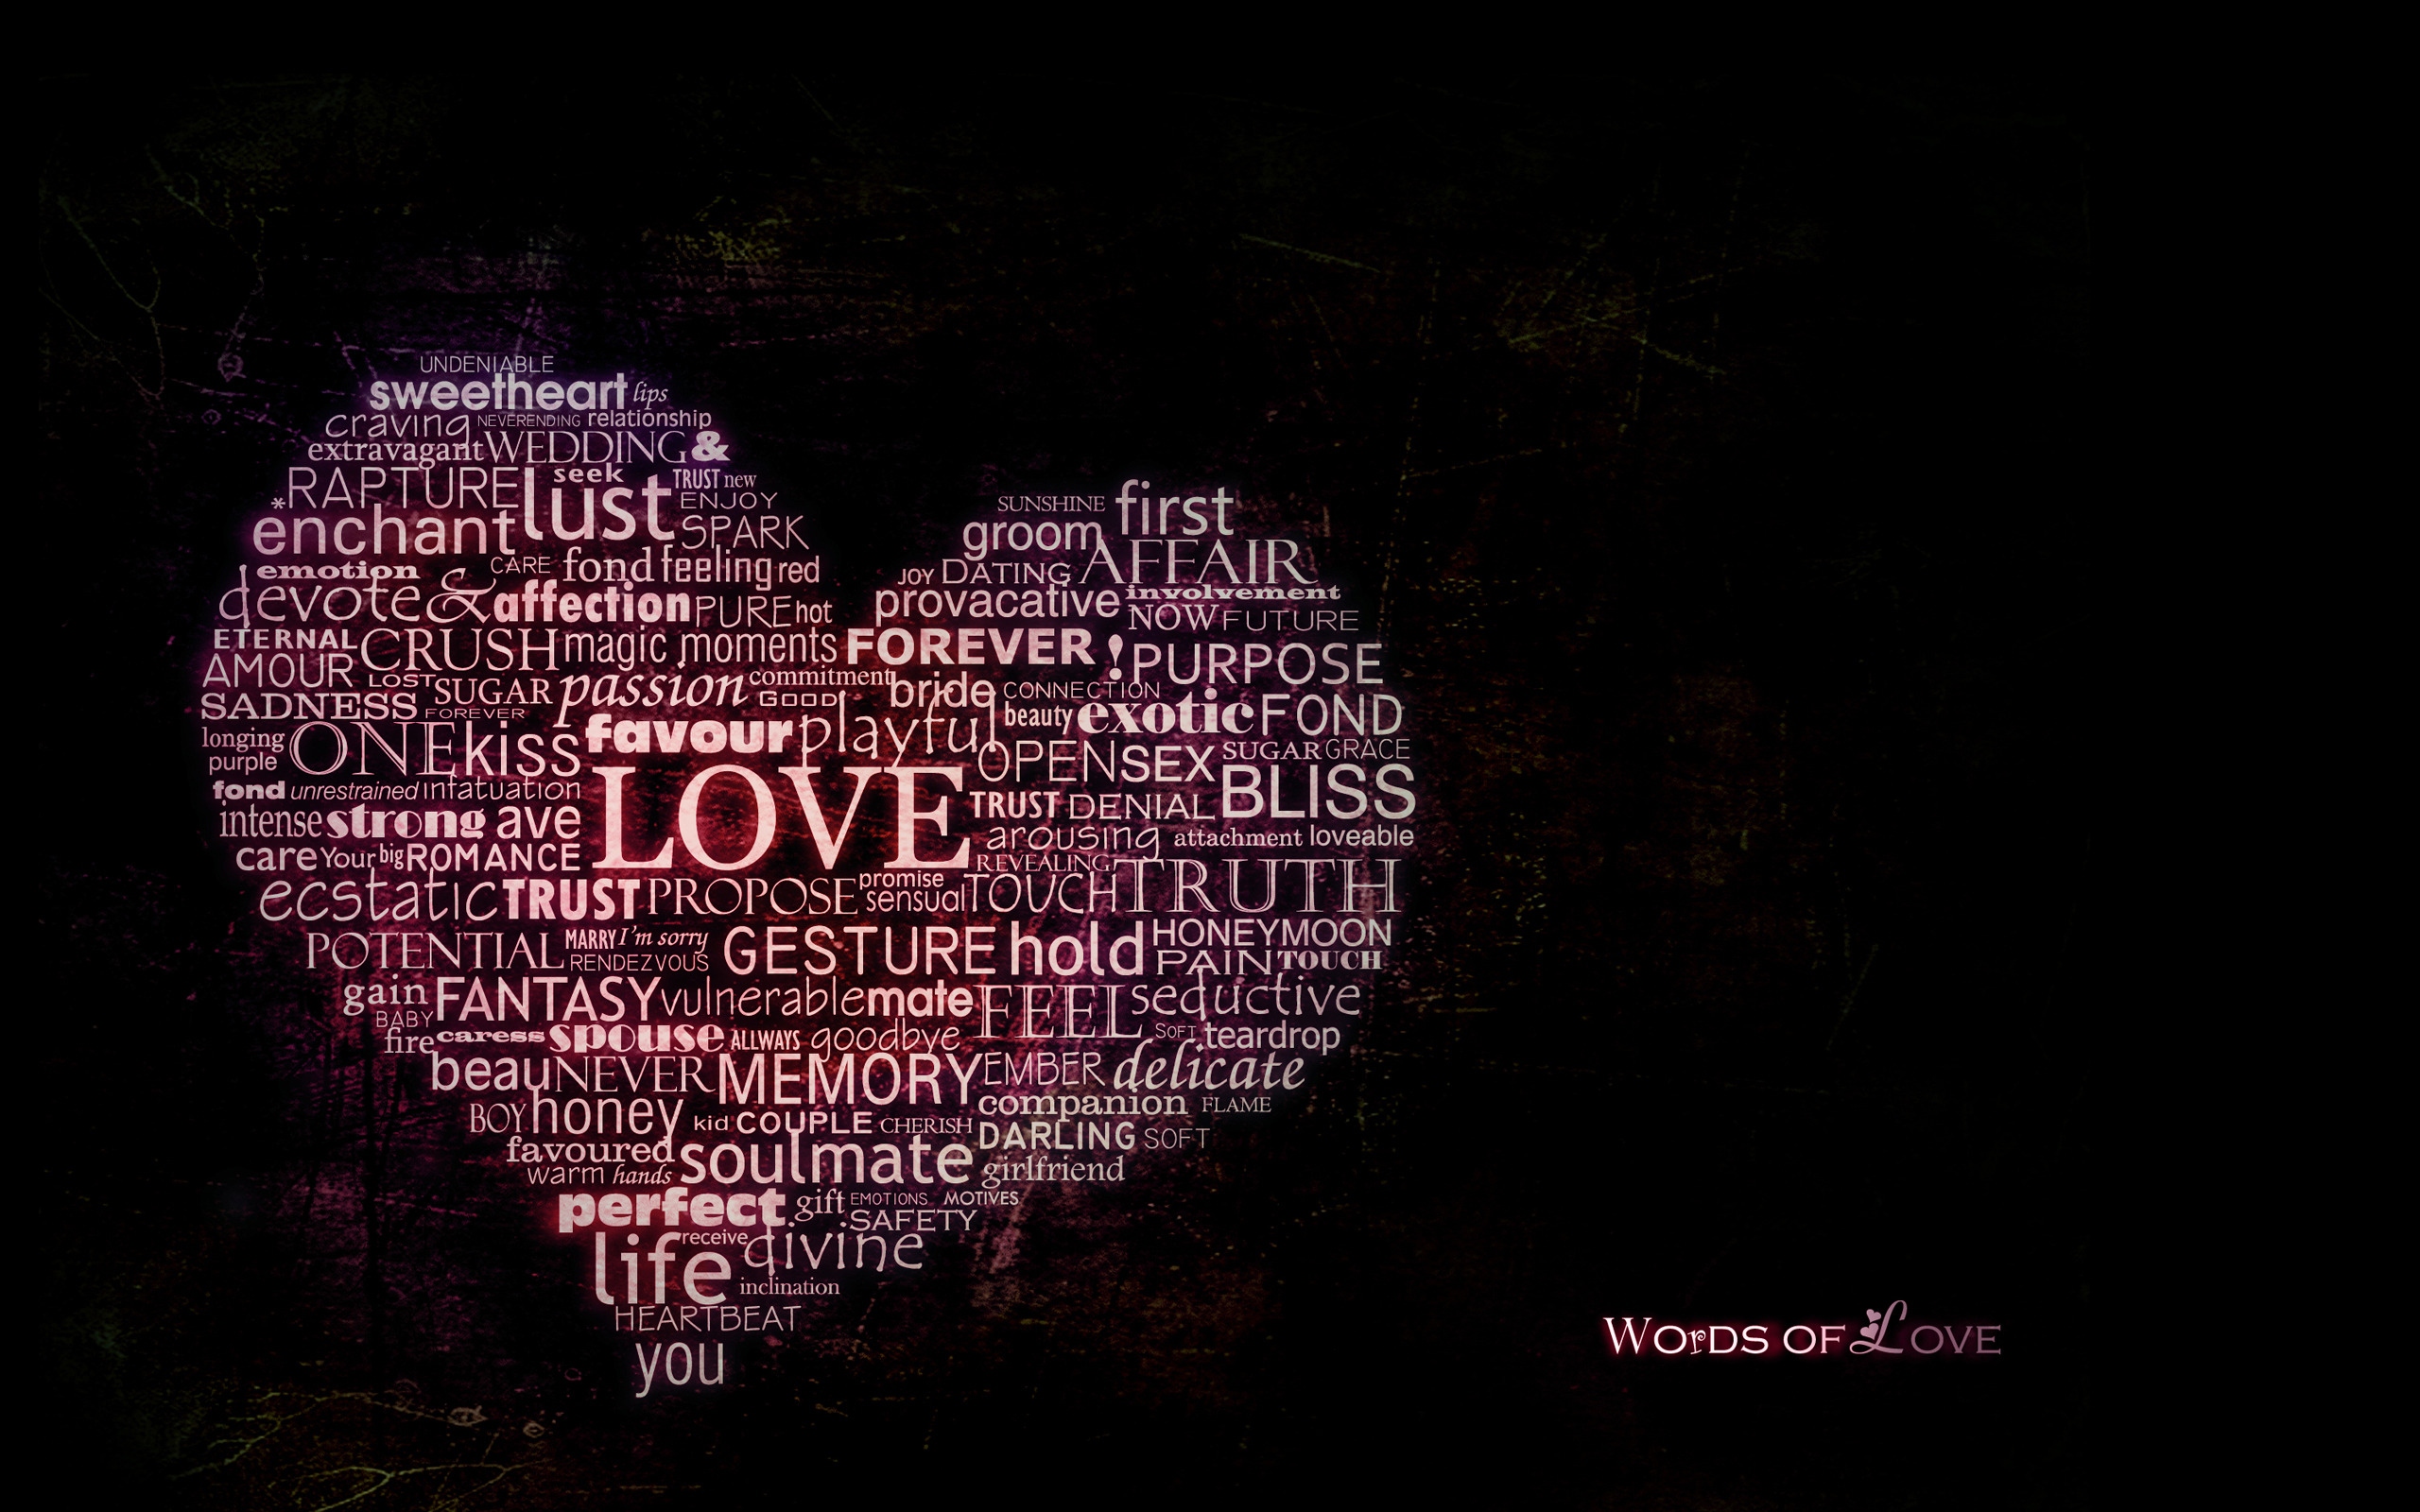 Love Wallpaper Hd Laptop : Love Wallpaper Laptop HD #4110 Wallpaper WallDiskPaper